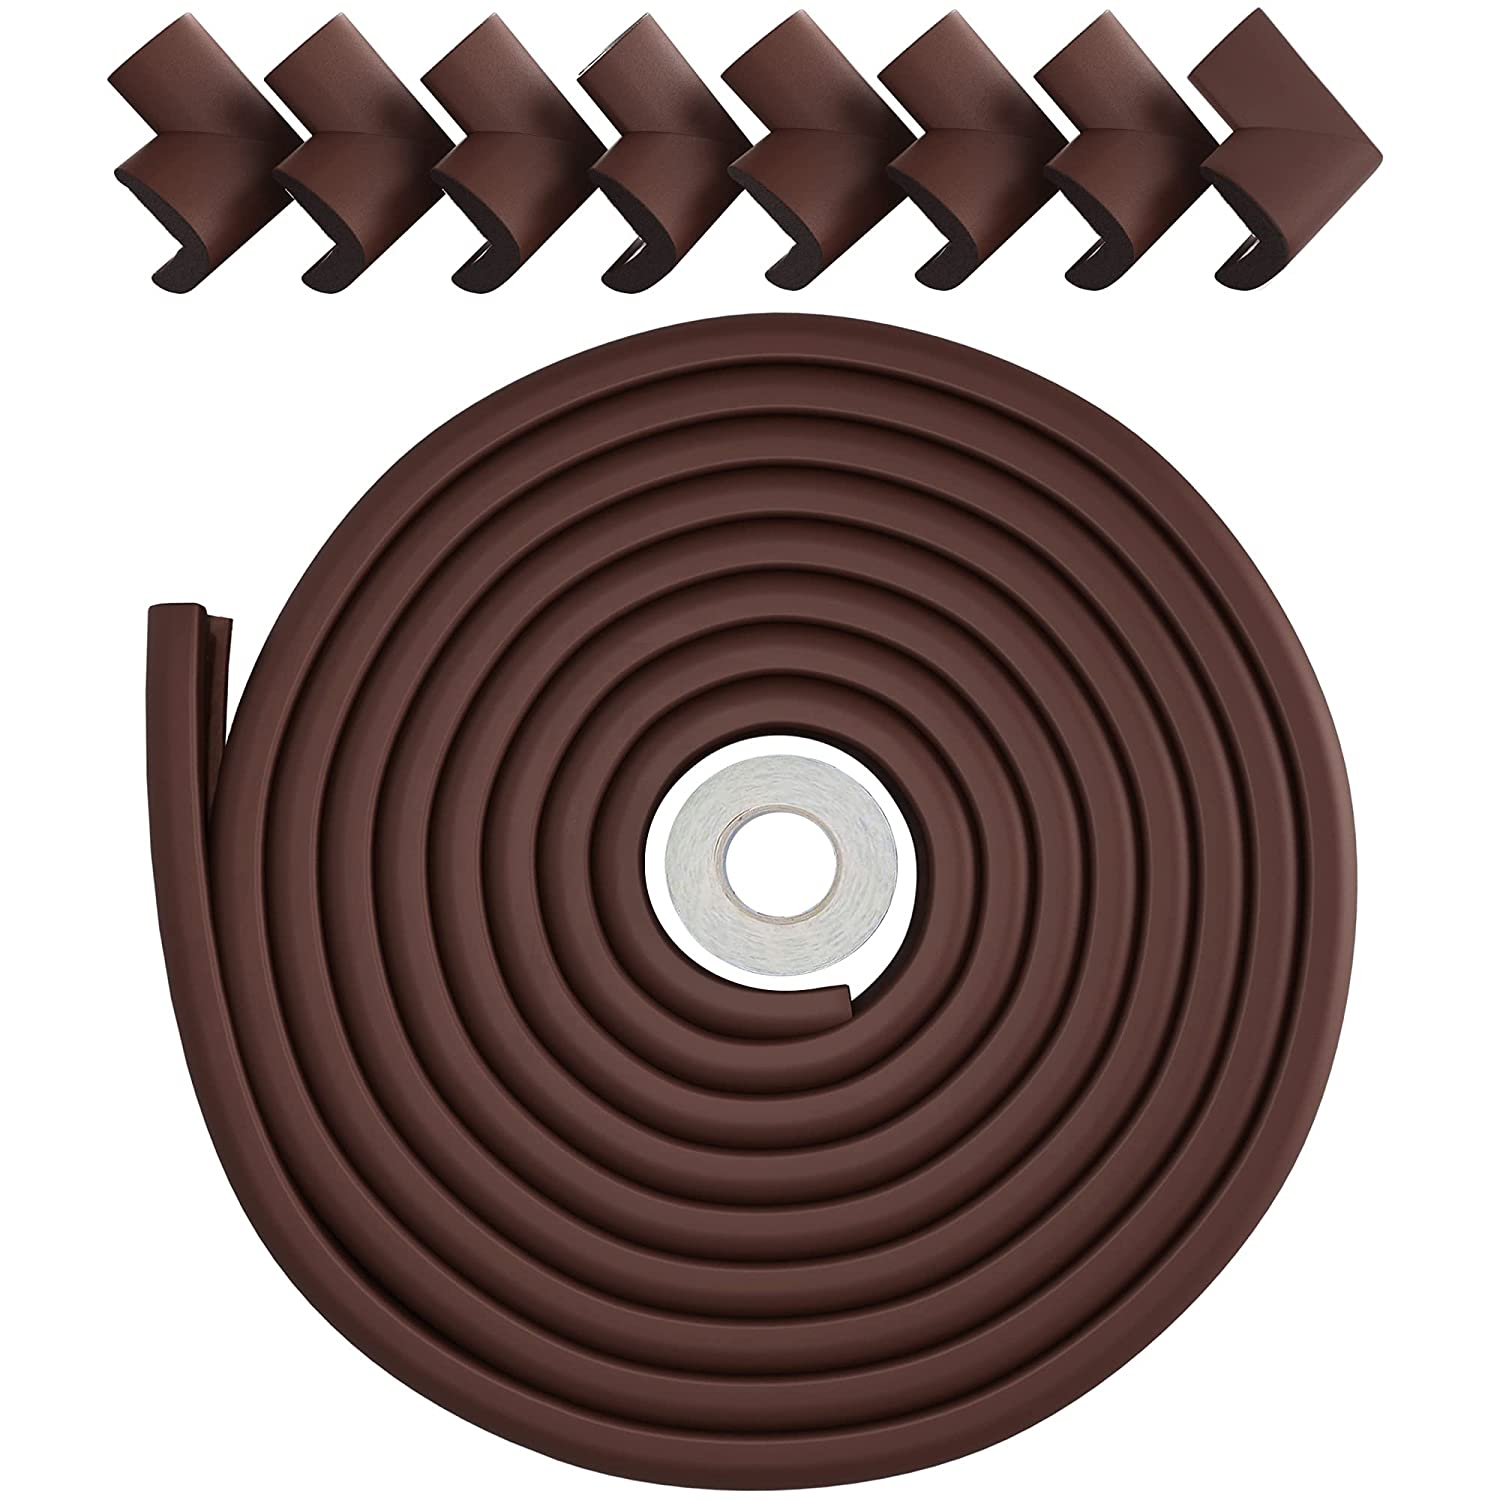 Baby Proofing Corner Guards & Edge Protectors - Foam Guard for Coffee Tables & Desks - Child Proof Furniture for Safety - Incl. 23ft Foam Cushioning & 8 Desk Edge Covers - Chocolate Brown